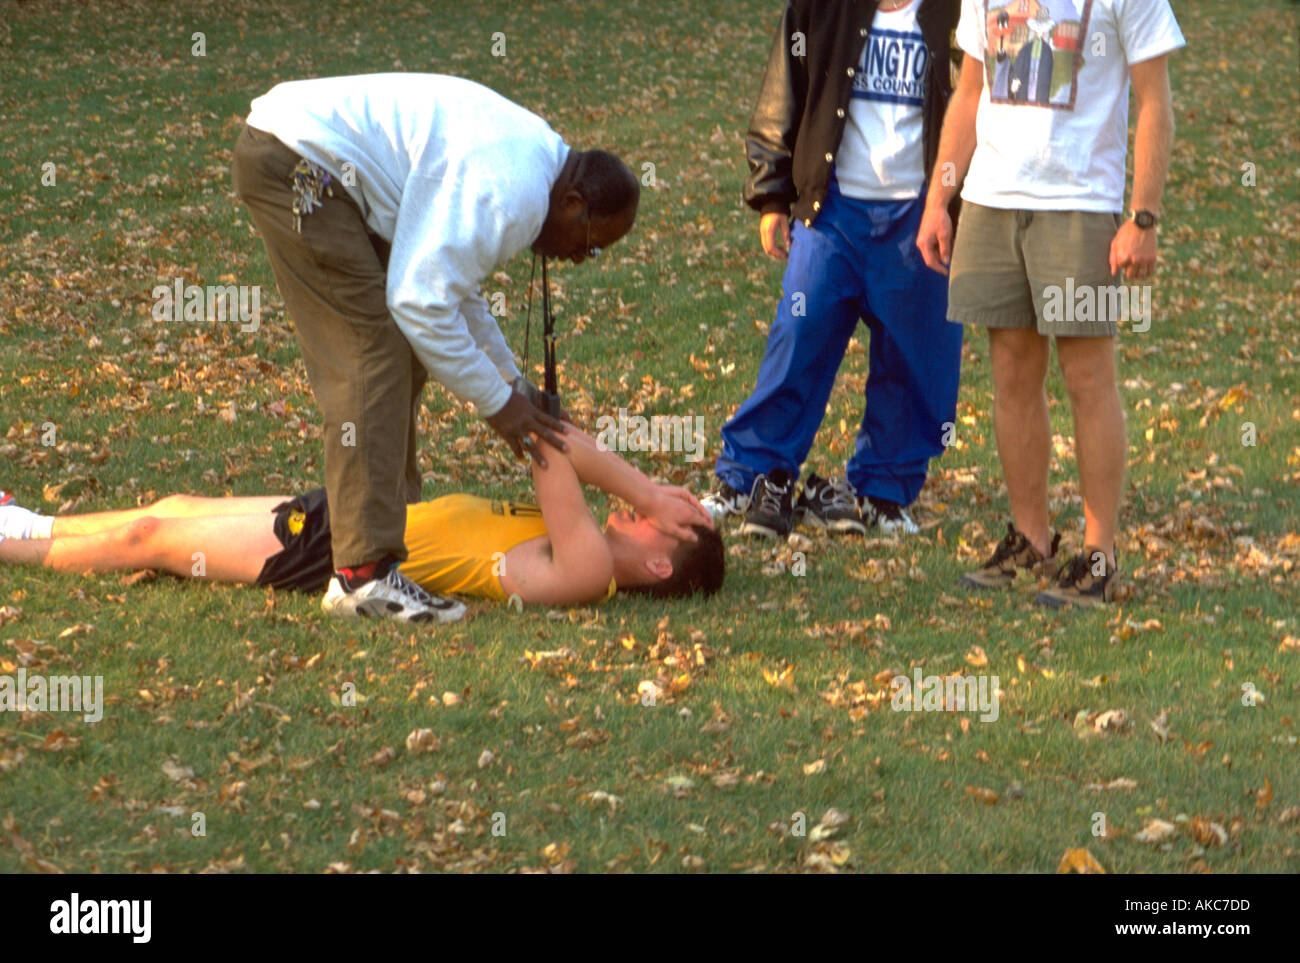 Coach 41 helping injured runner 16 at cross-country regional's. St Paul Minnesota USA - Stock Image